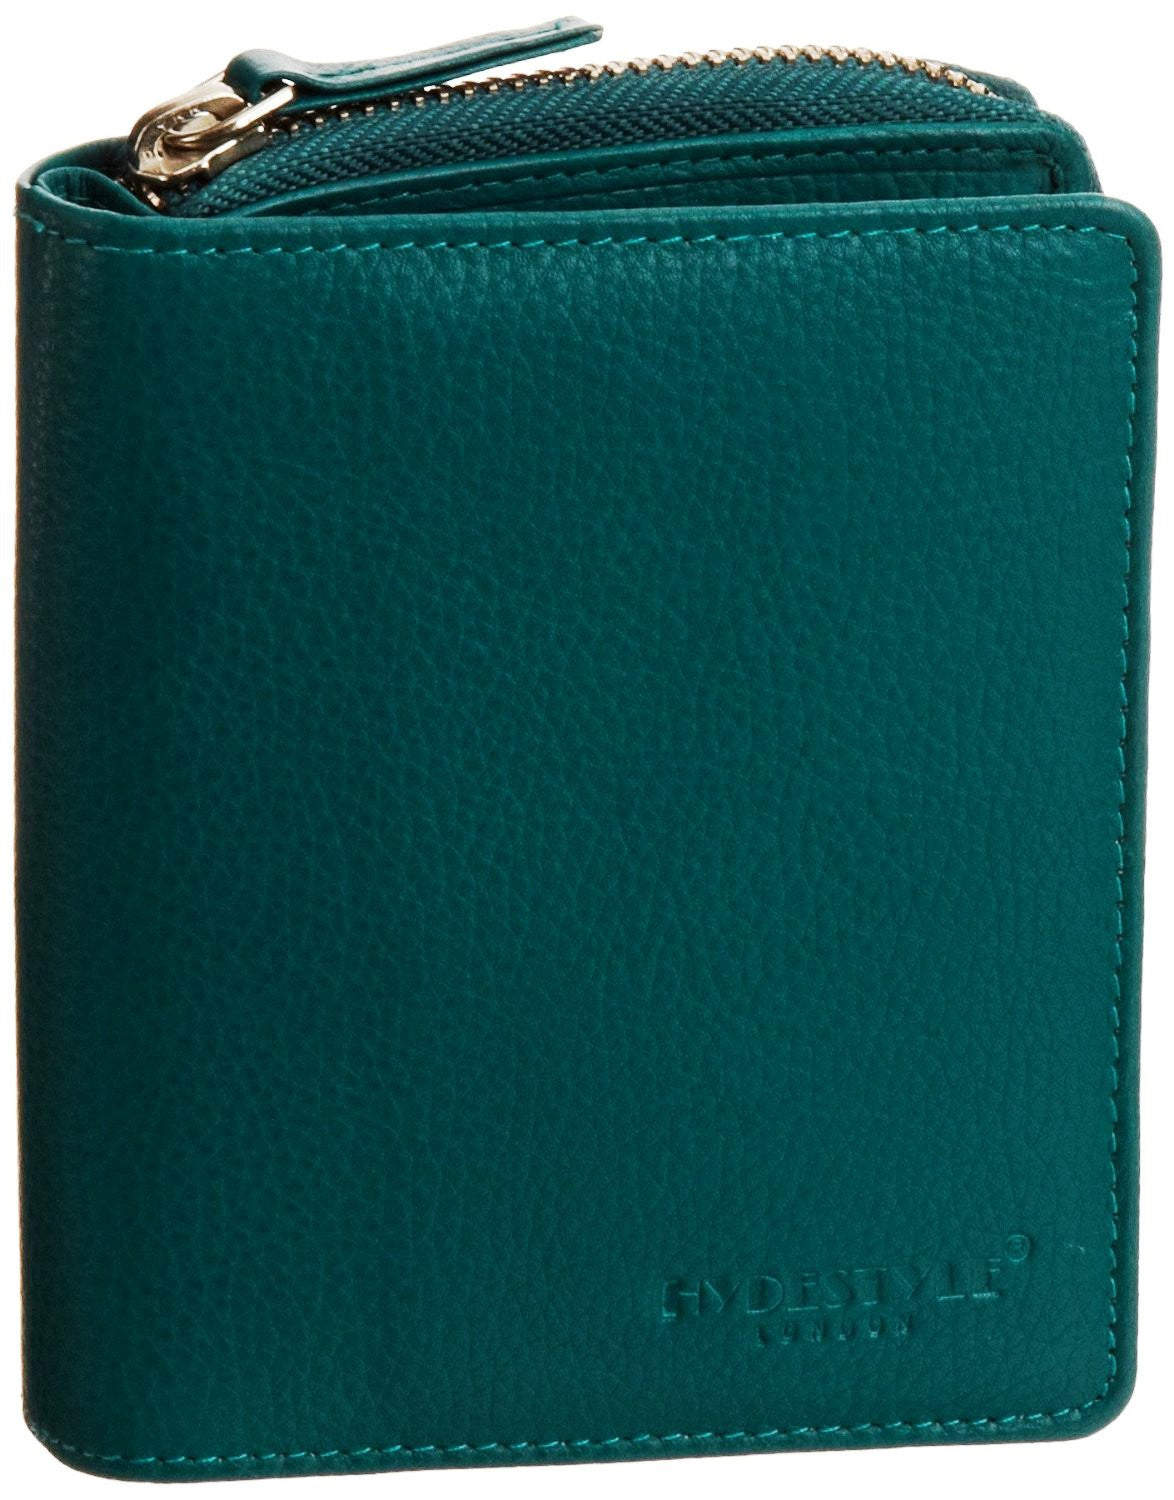 Pratico - women leather trifold wallet #LW01 Green